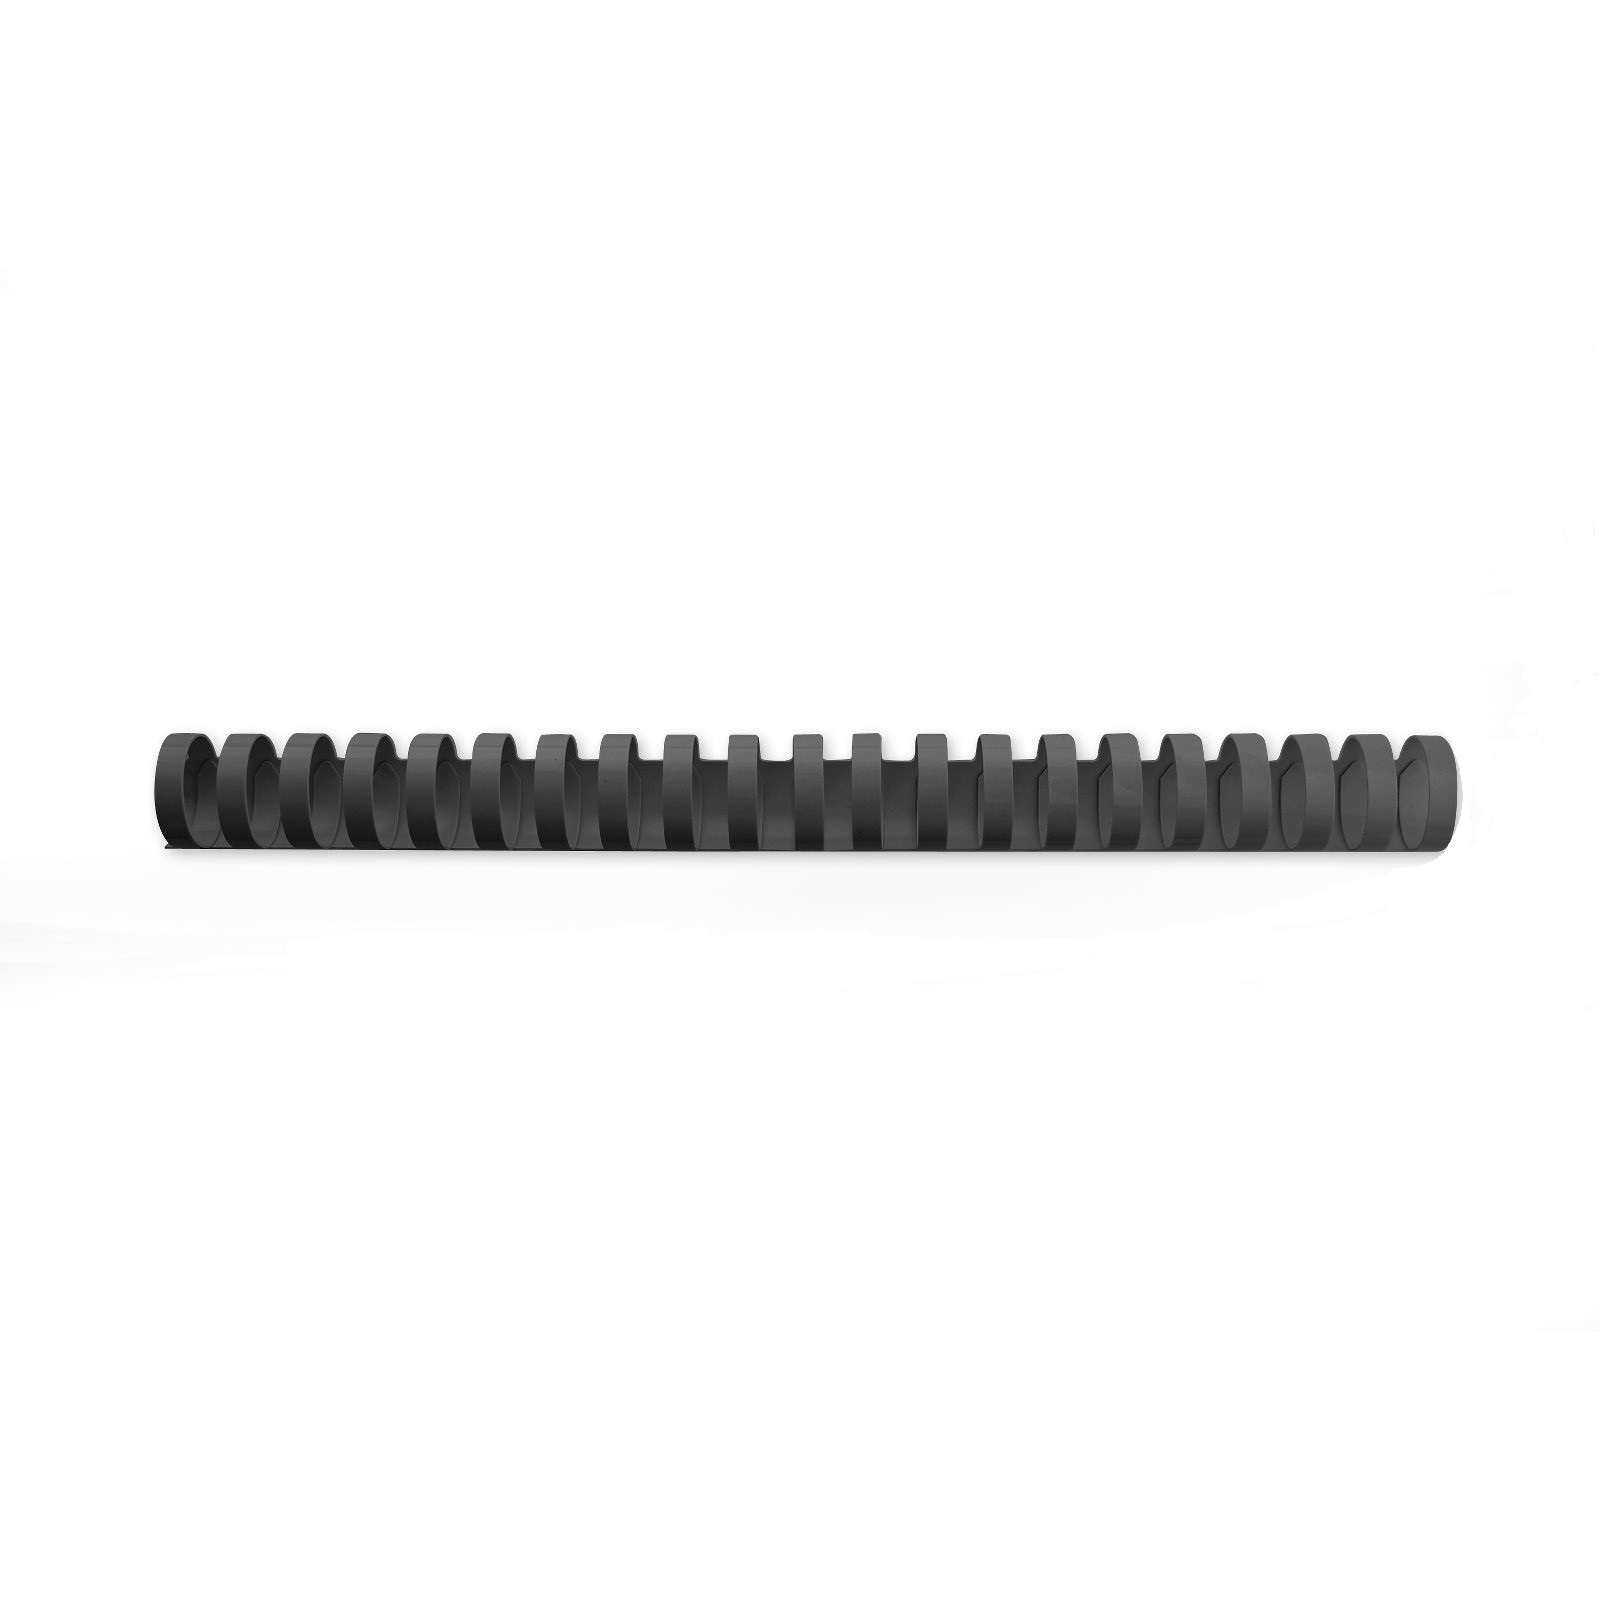 GBC Bind Combs 21 Ring A4 28mm BK PK50